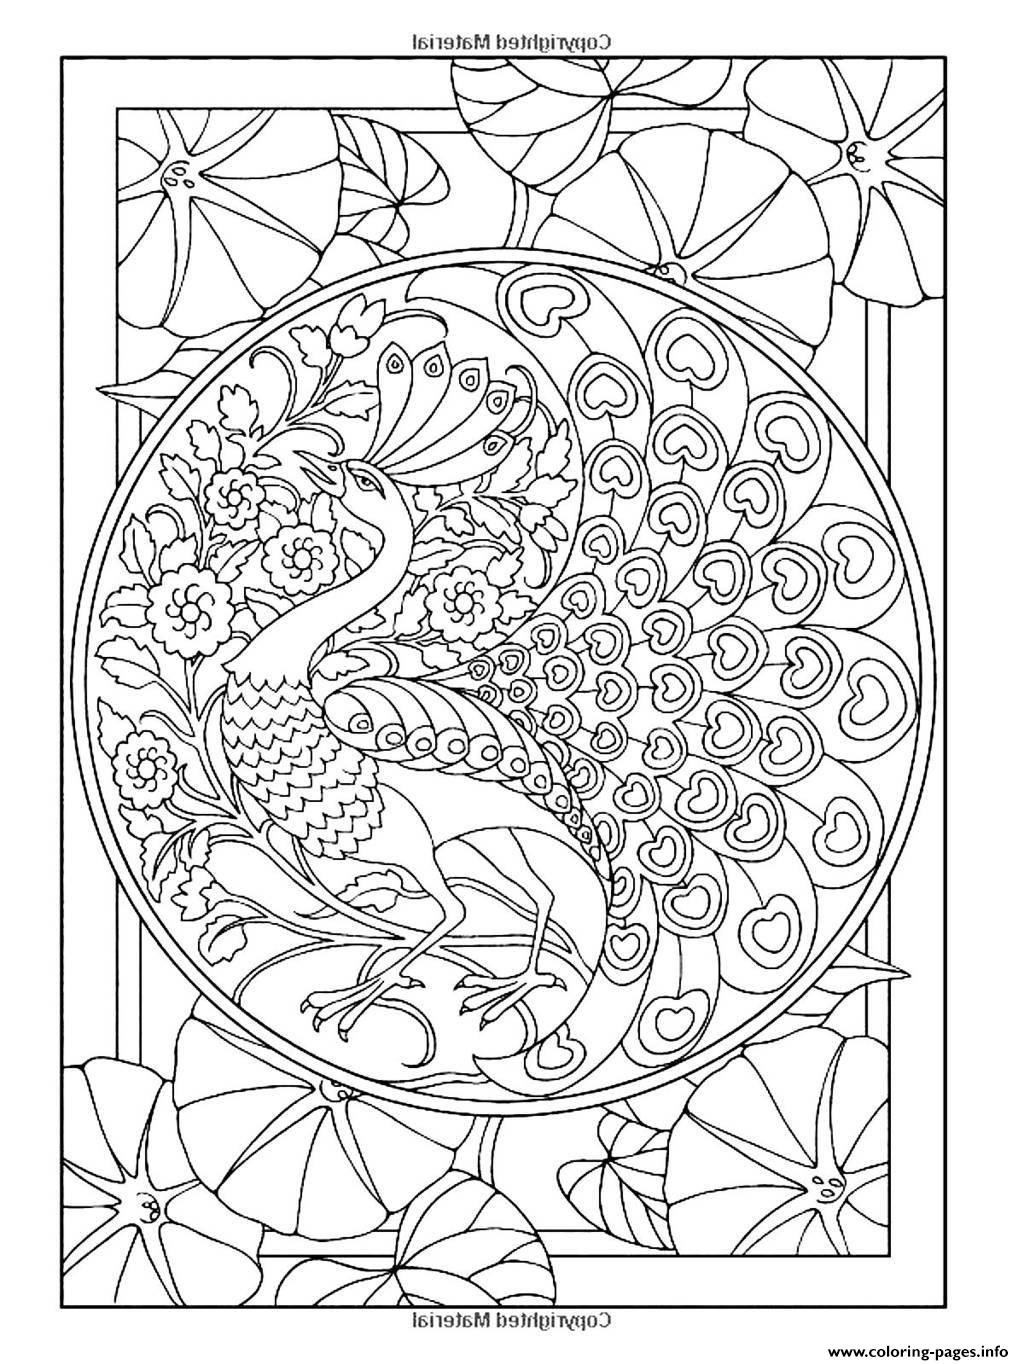 coloring peacock color page peacock coloring pages to download and print for free peacock coloring page color